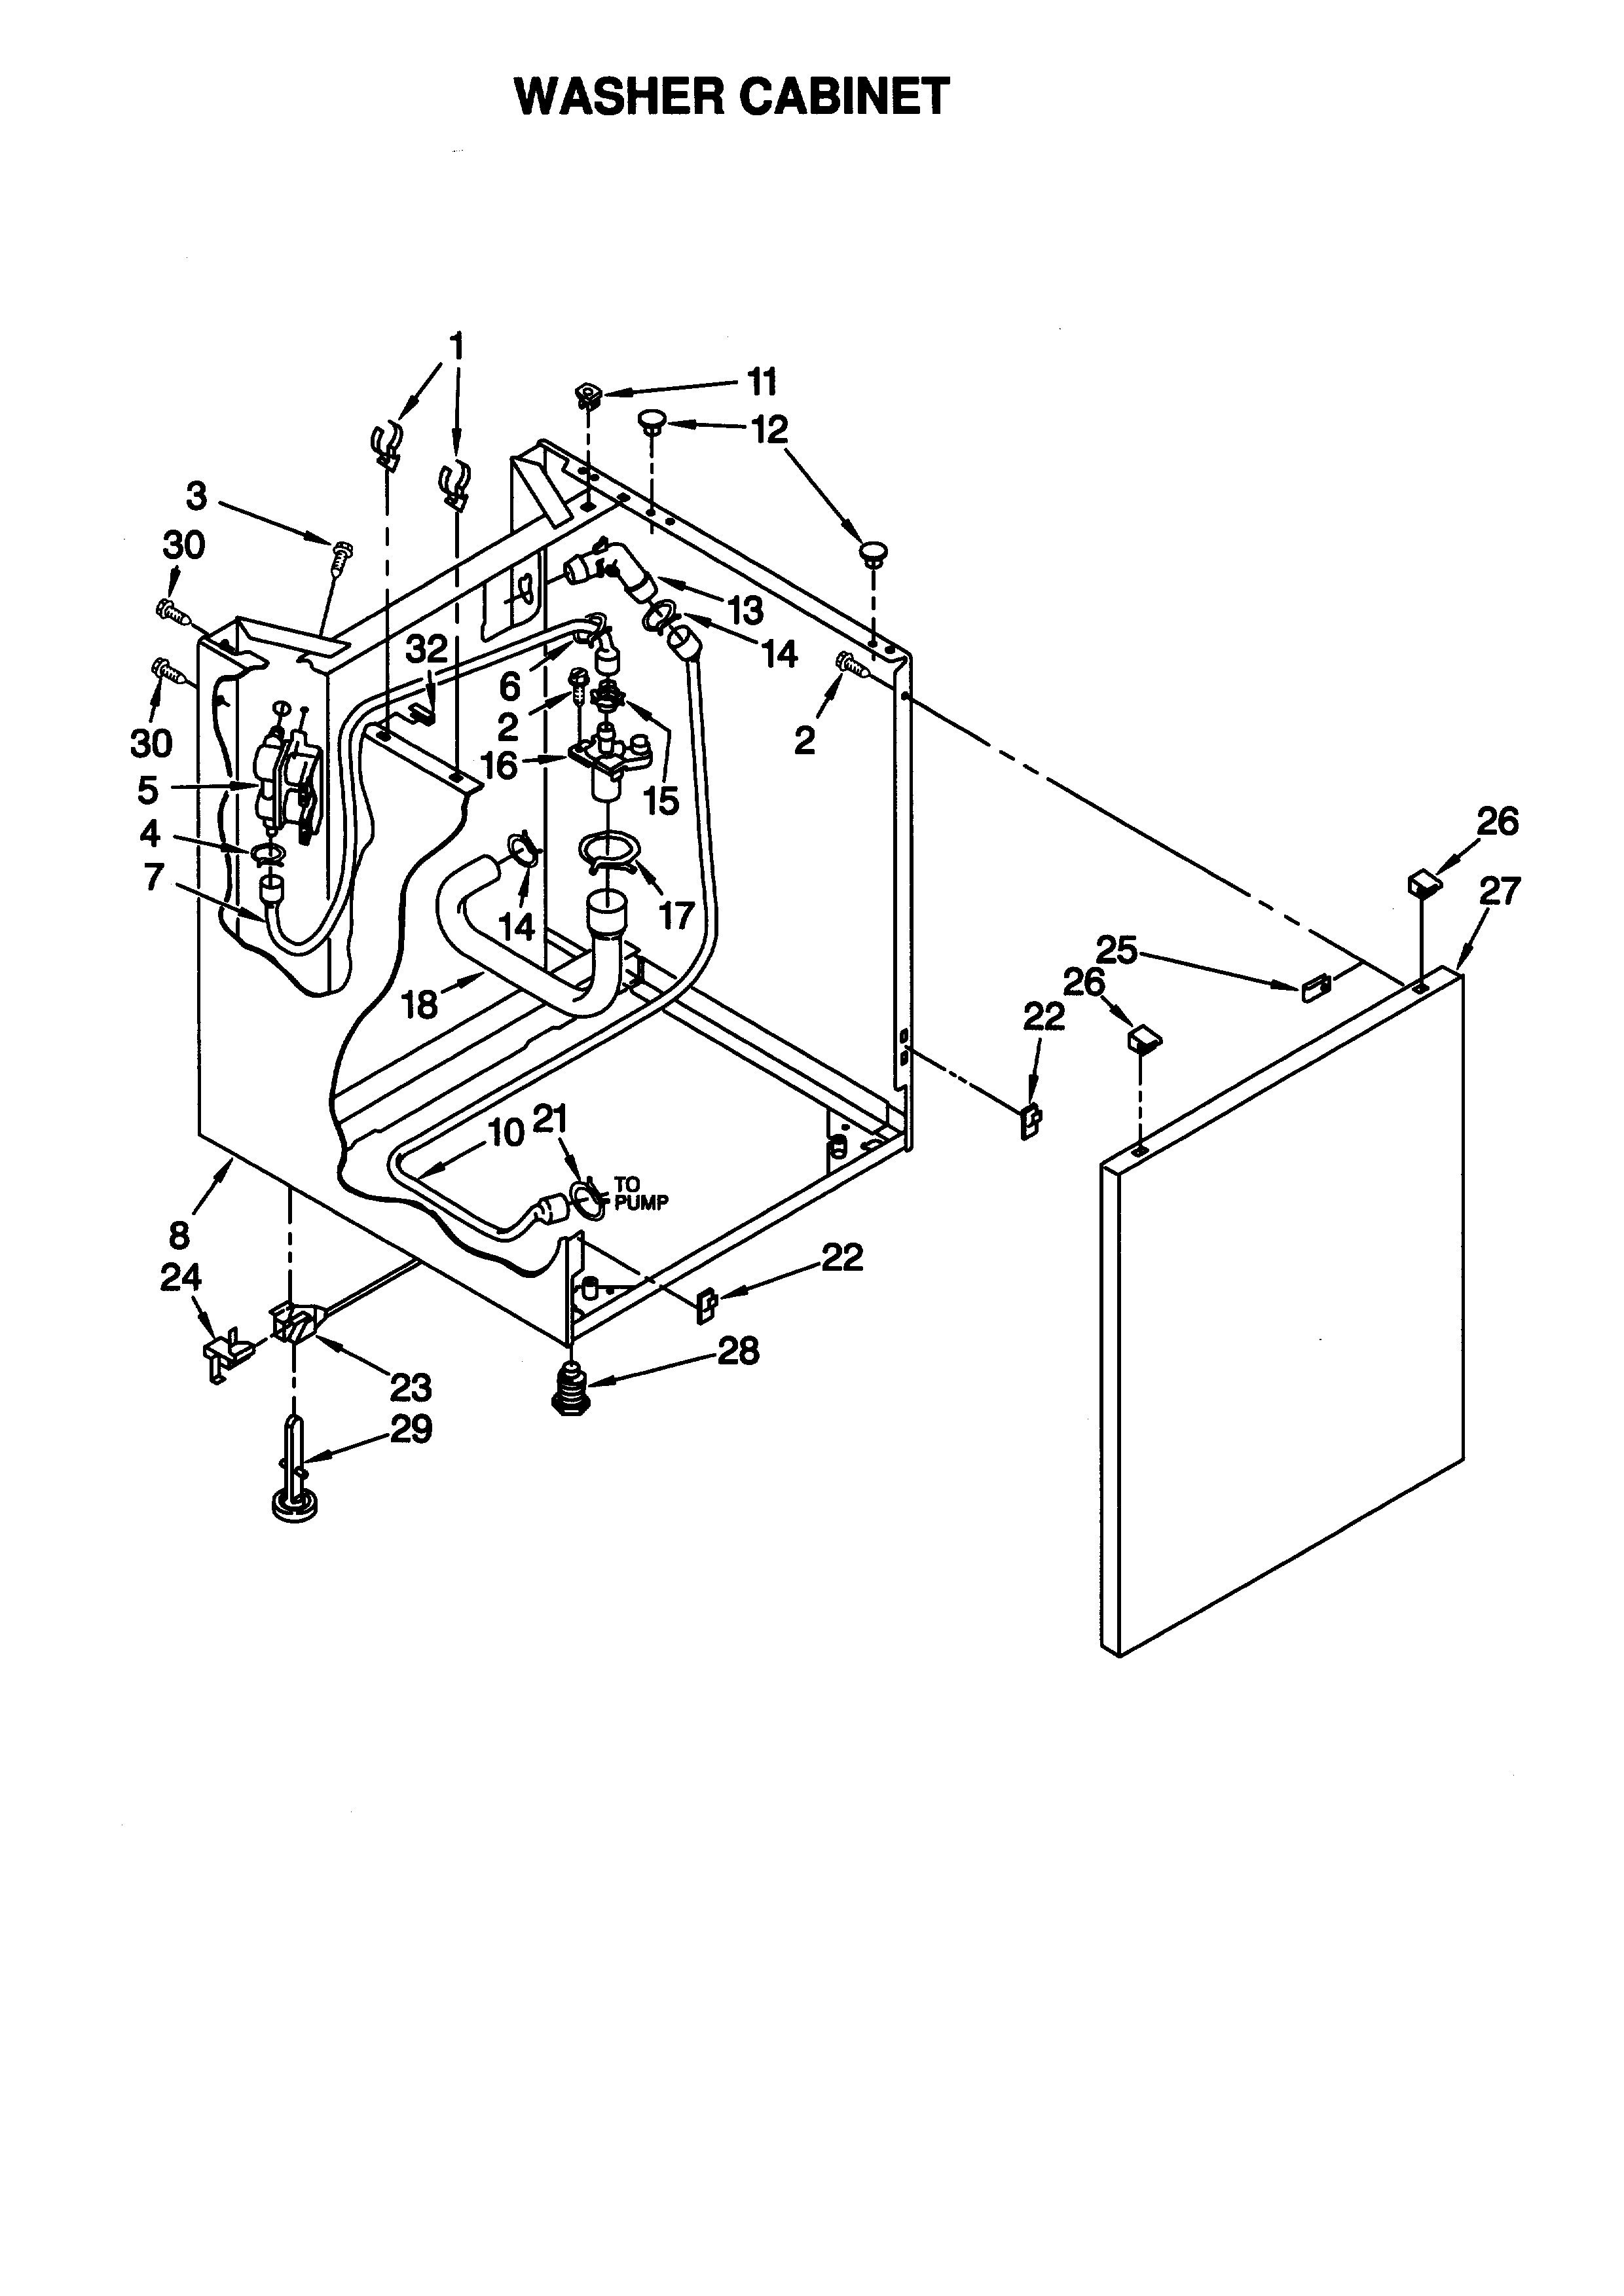 WASHER CABINET Diagram & Parts List for Model 11088754791